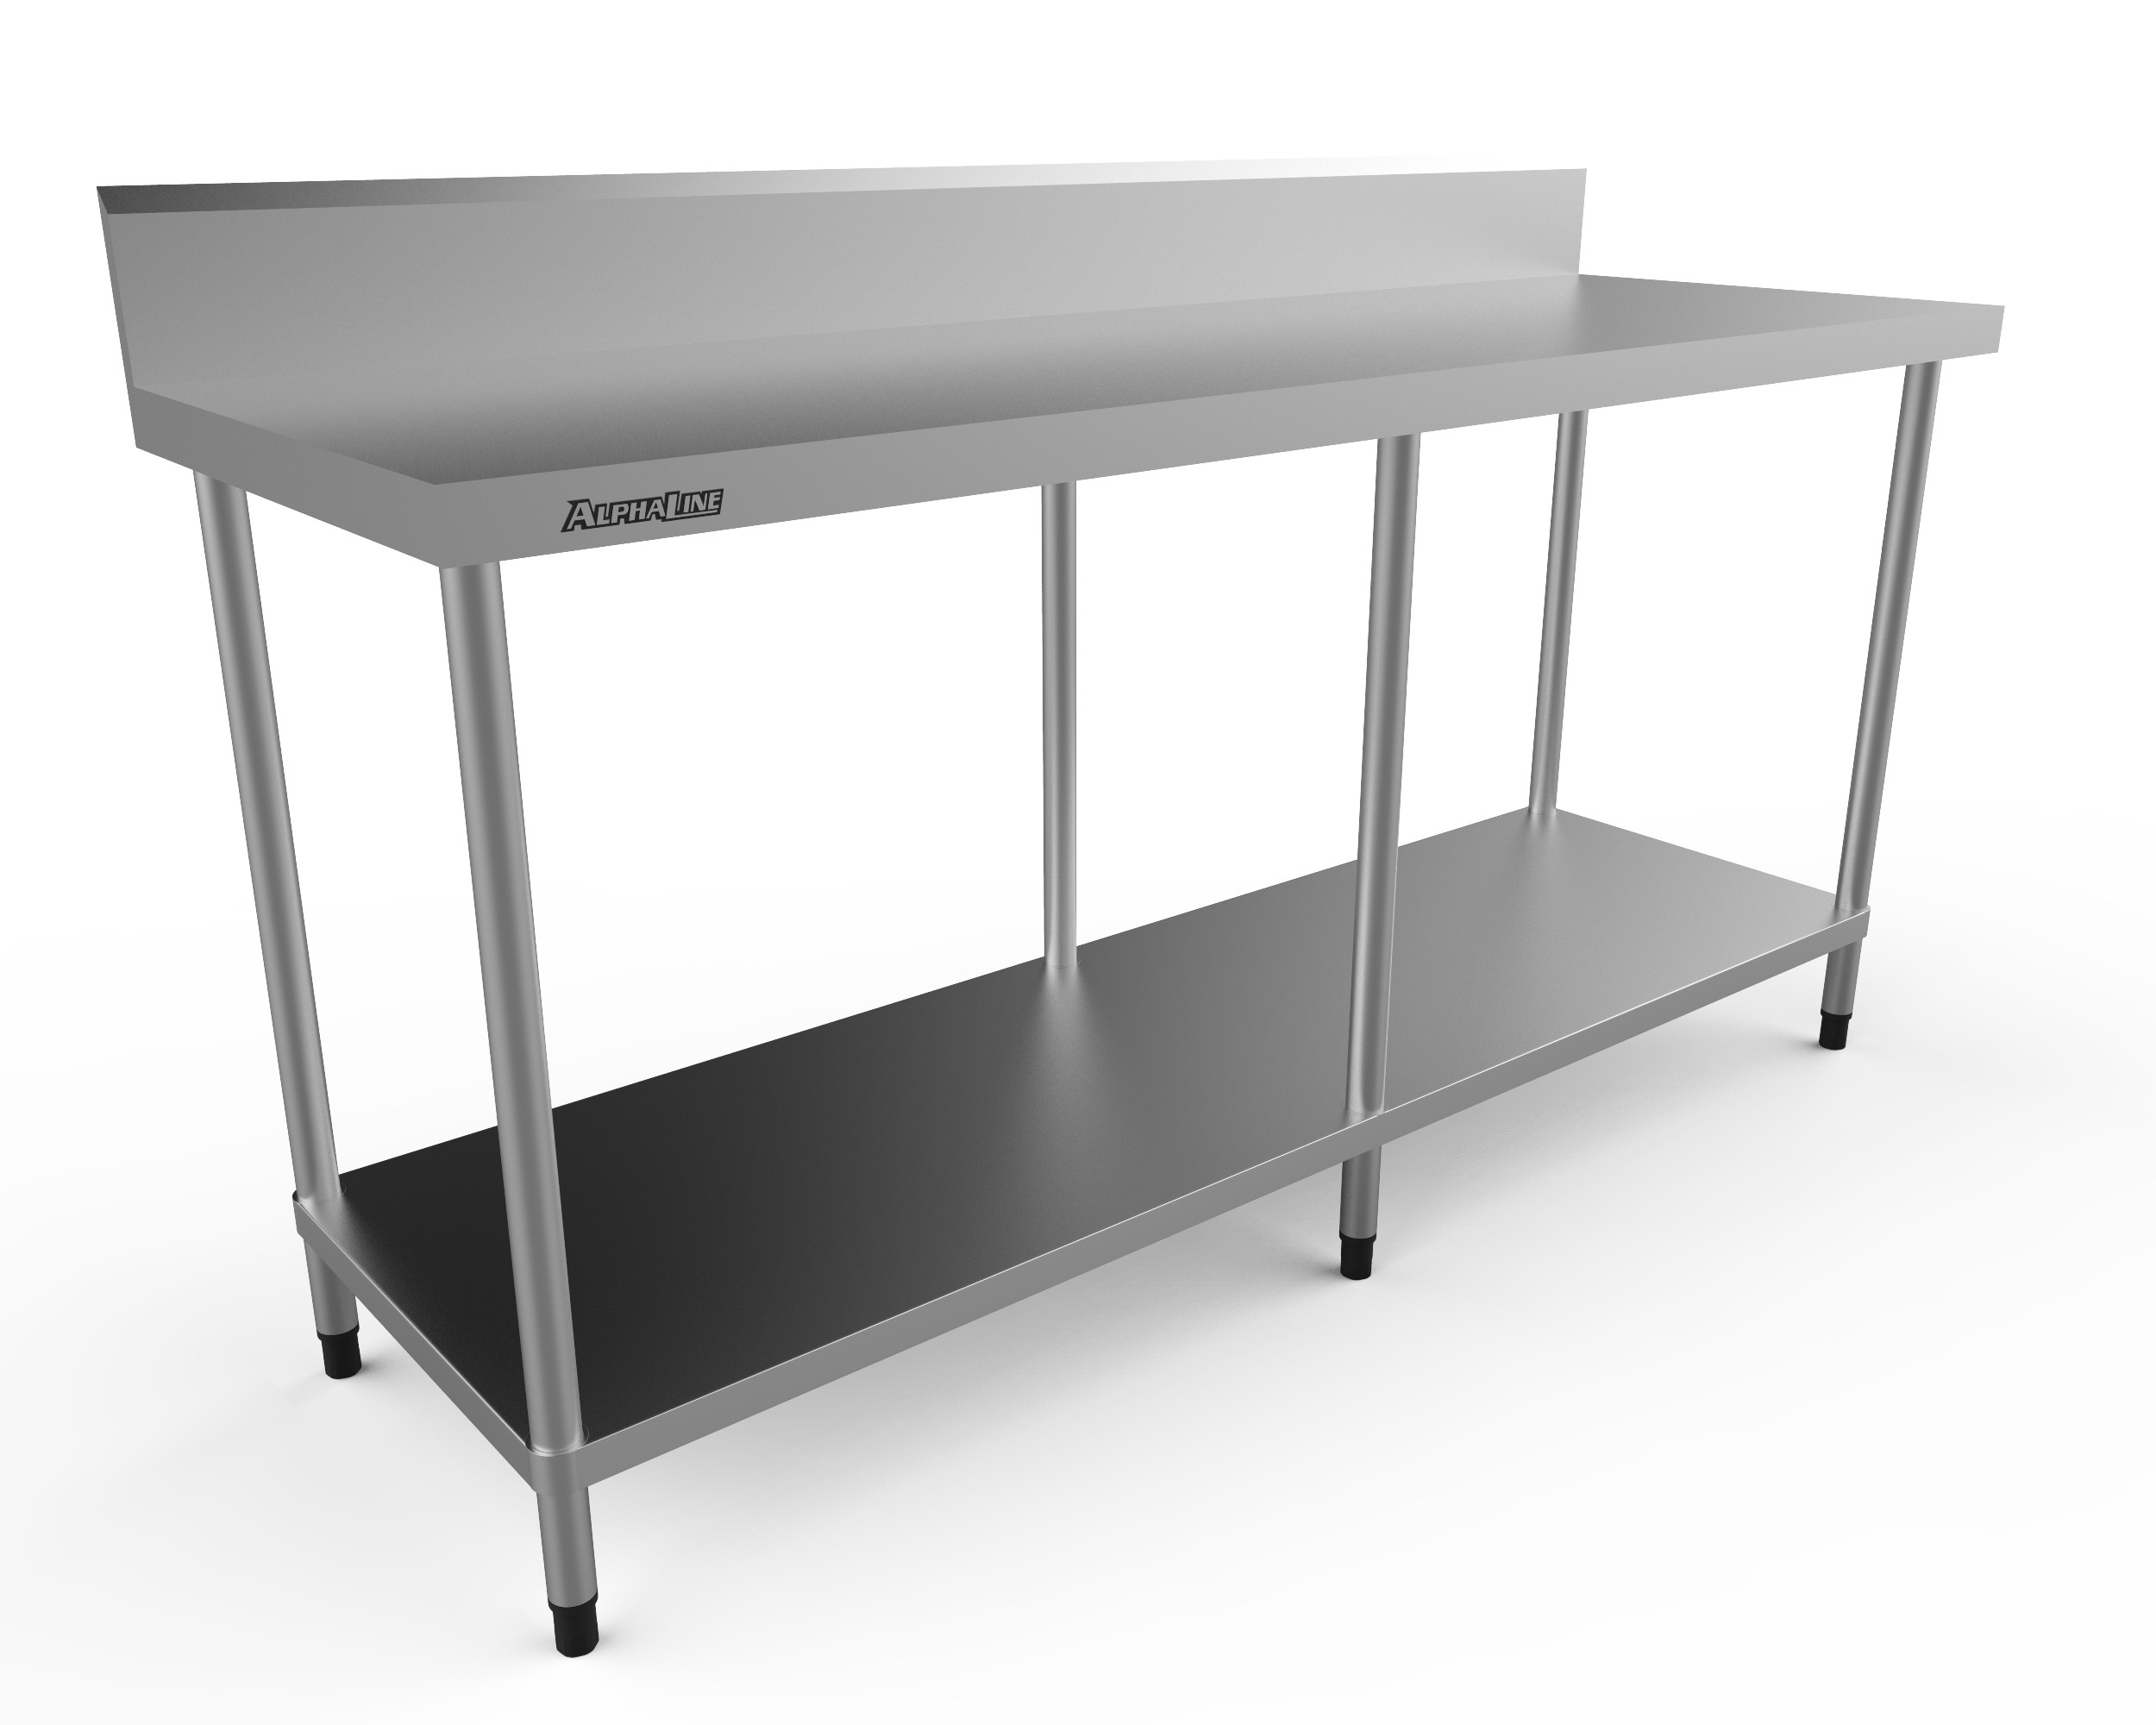 Stainless Steel Bench with Splash Back - 1800 x 600 - ALP-SB-60180